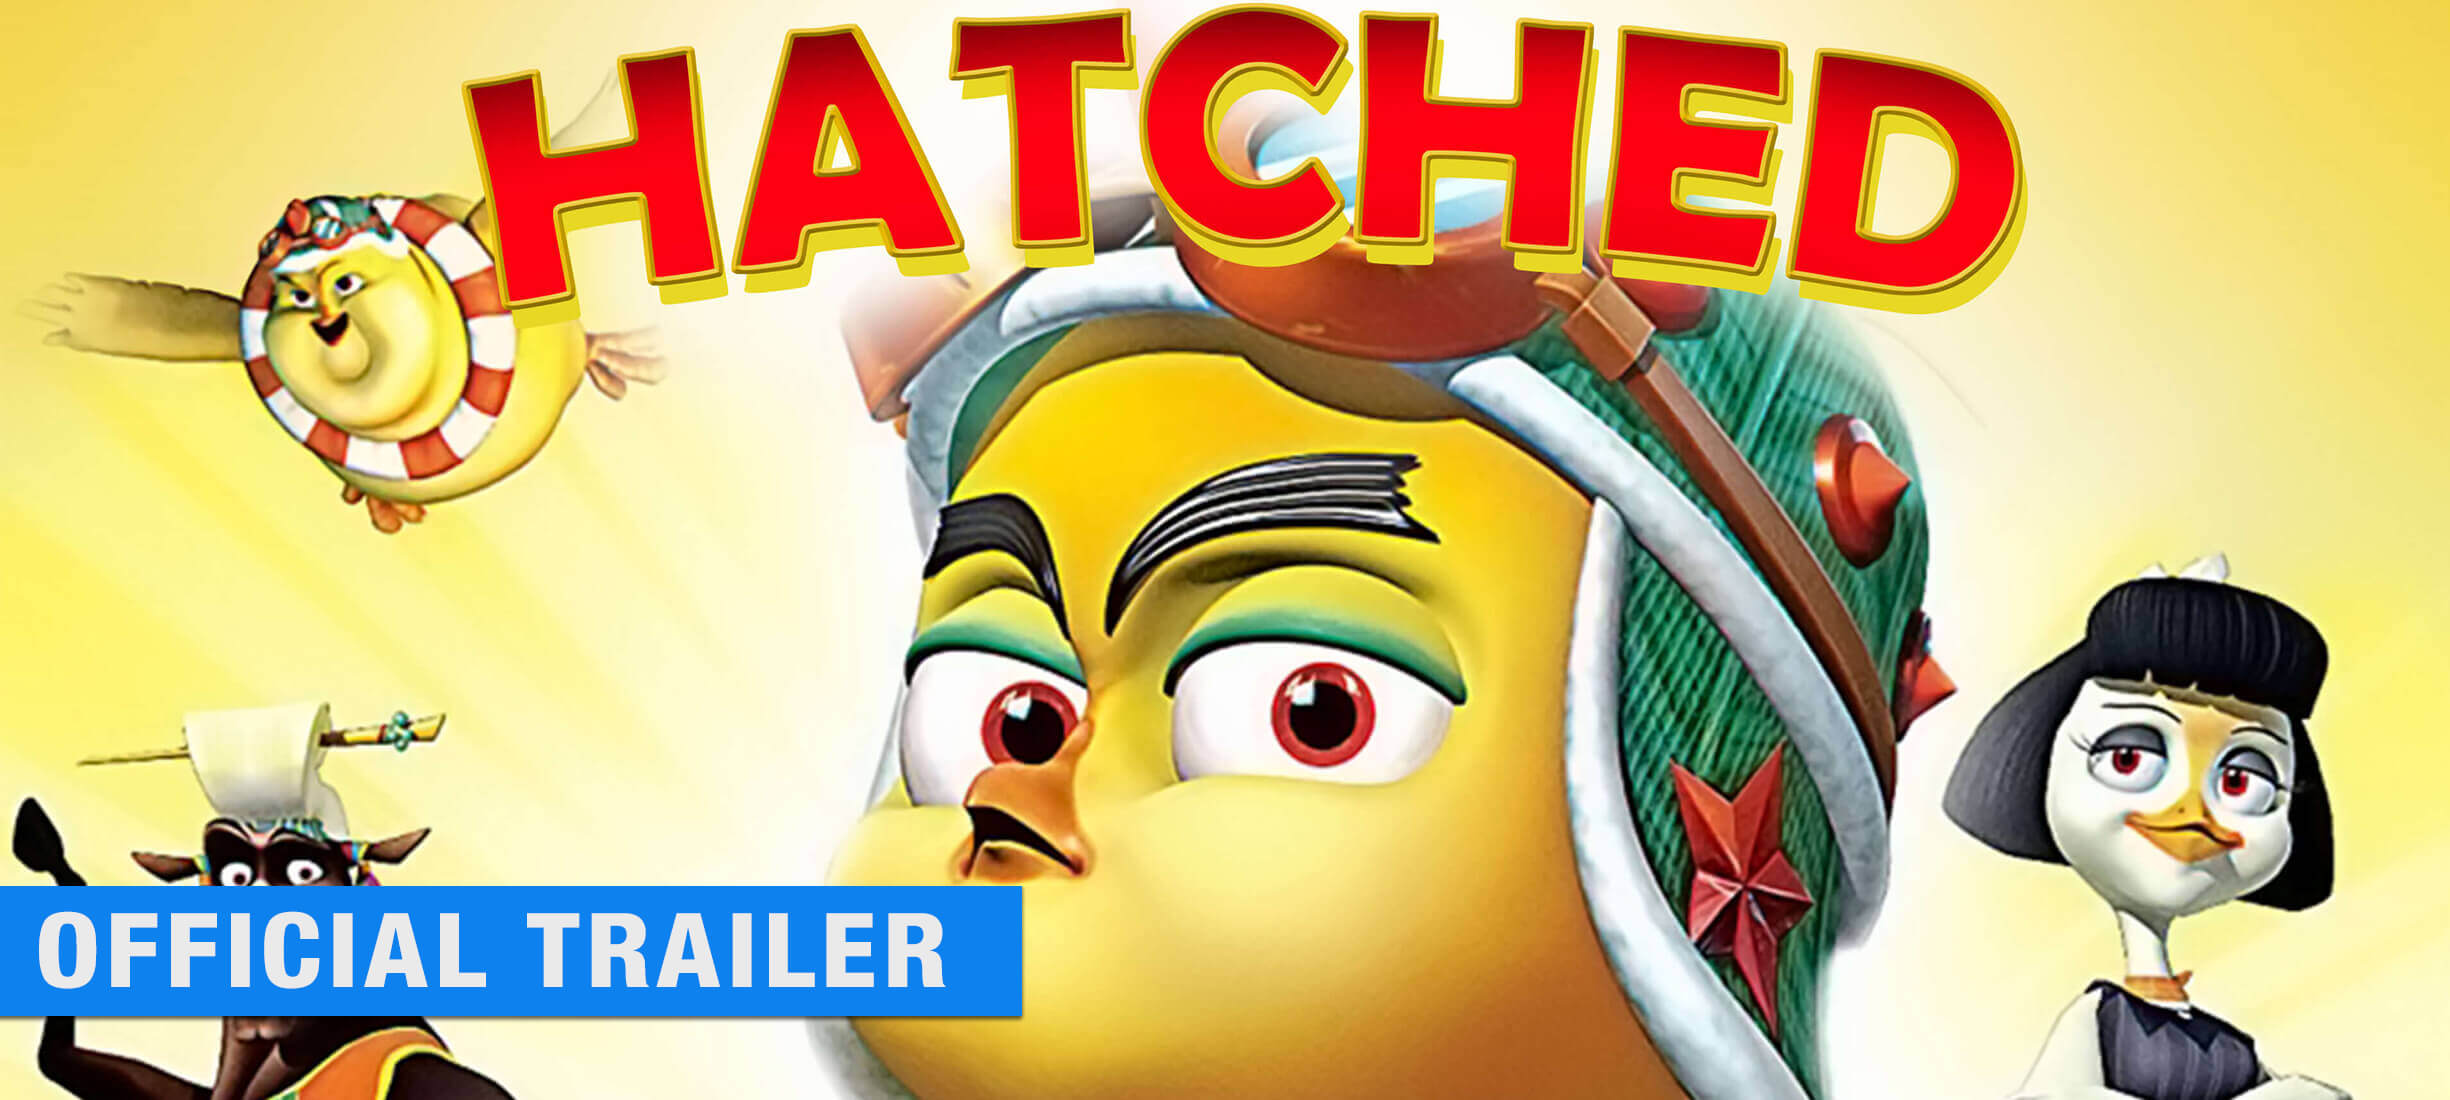 Hatched: Trailer